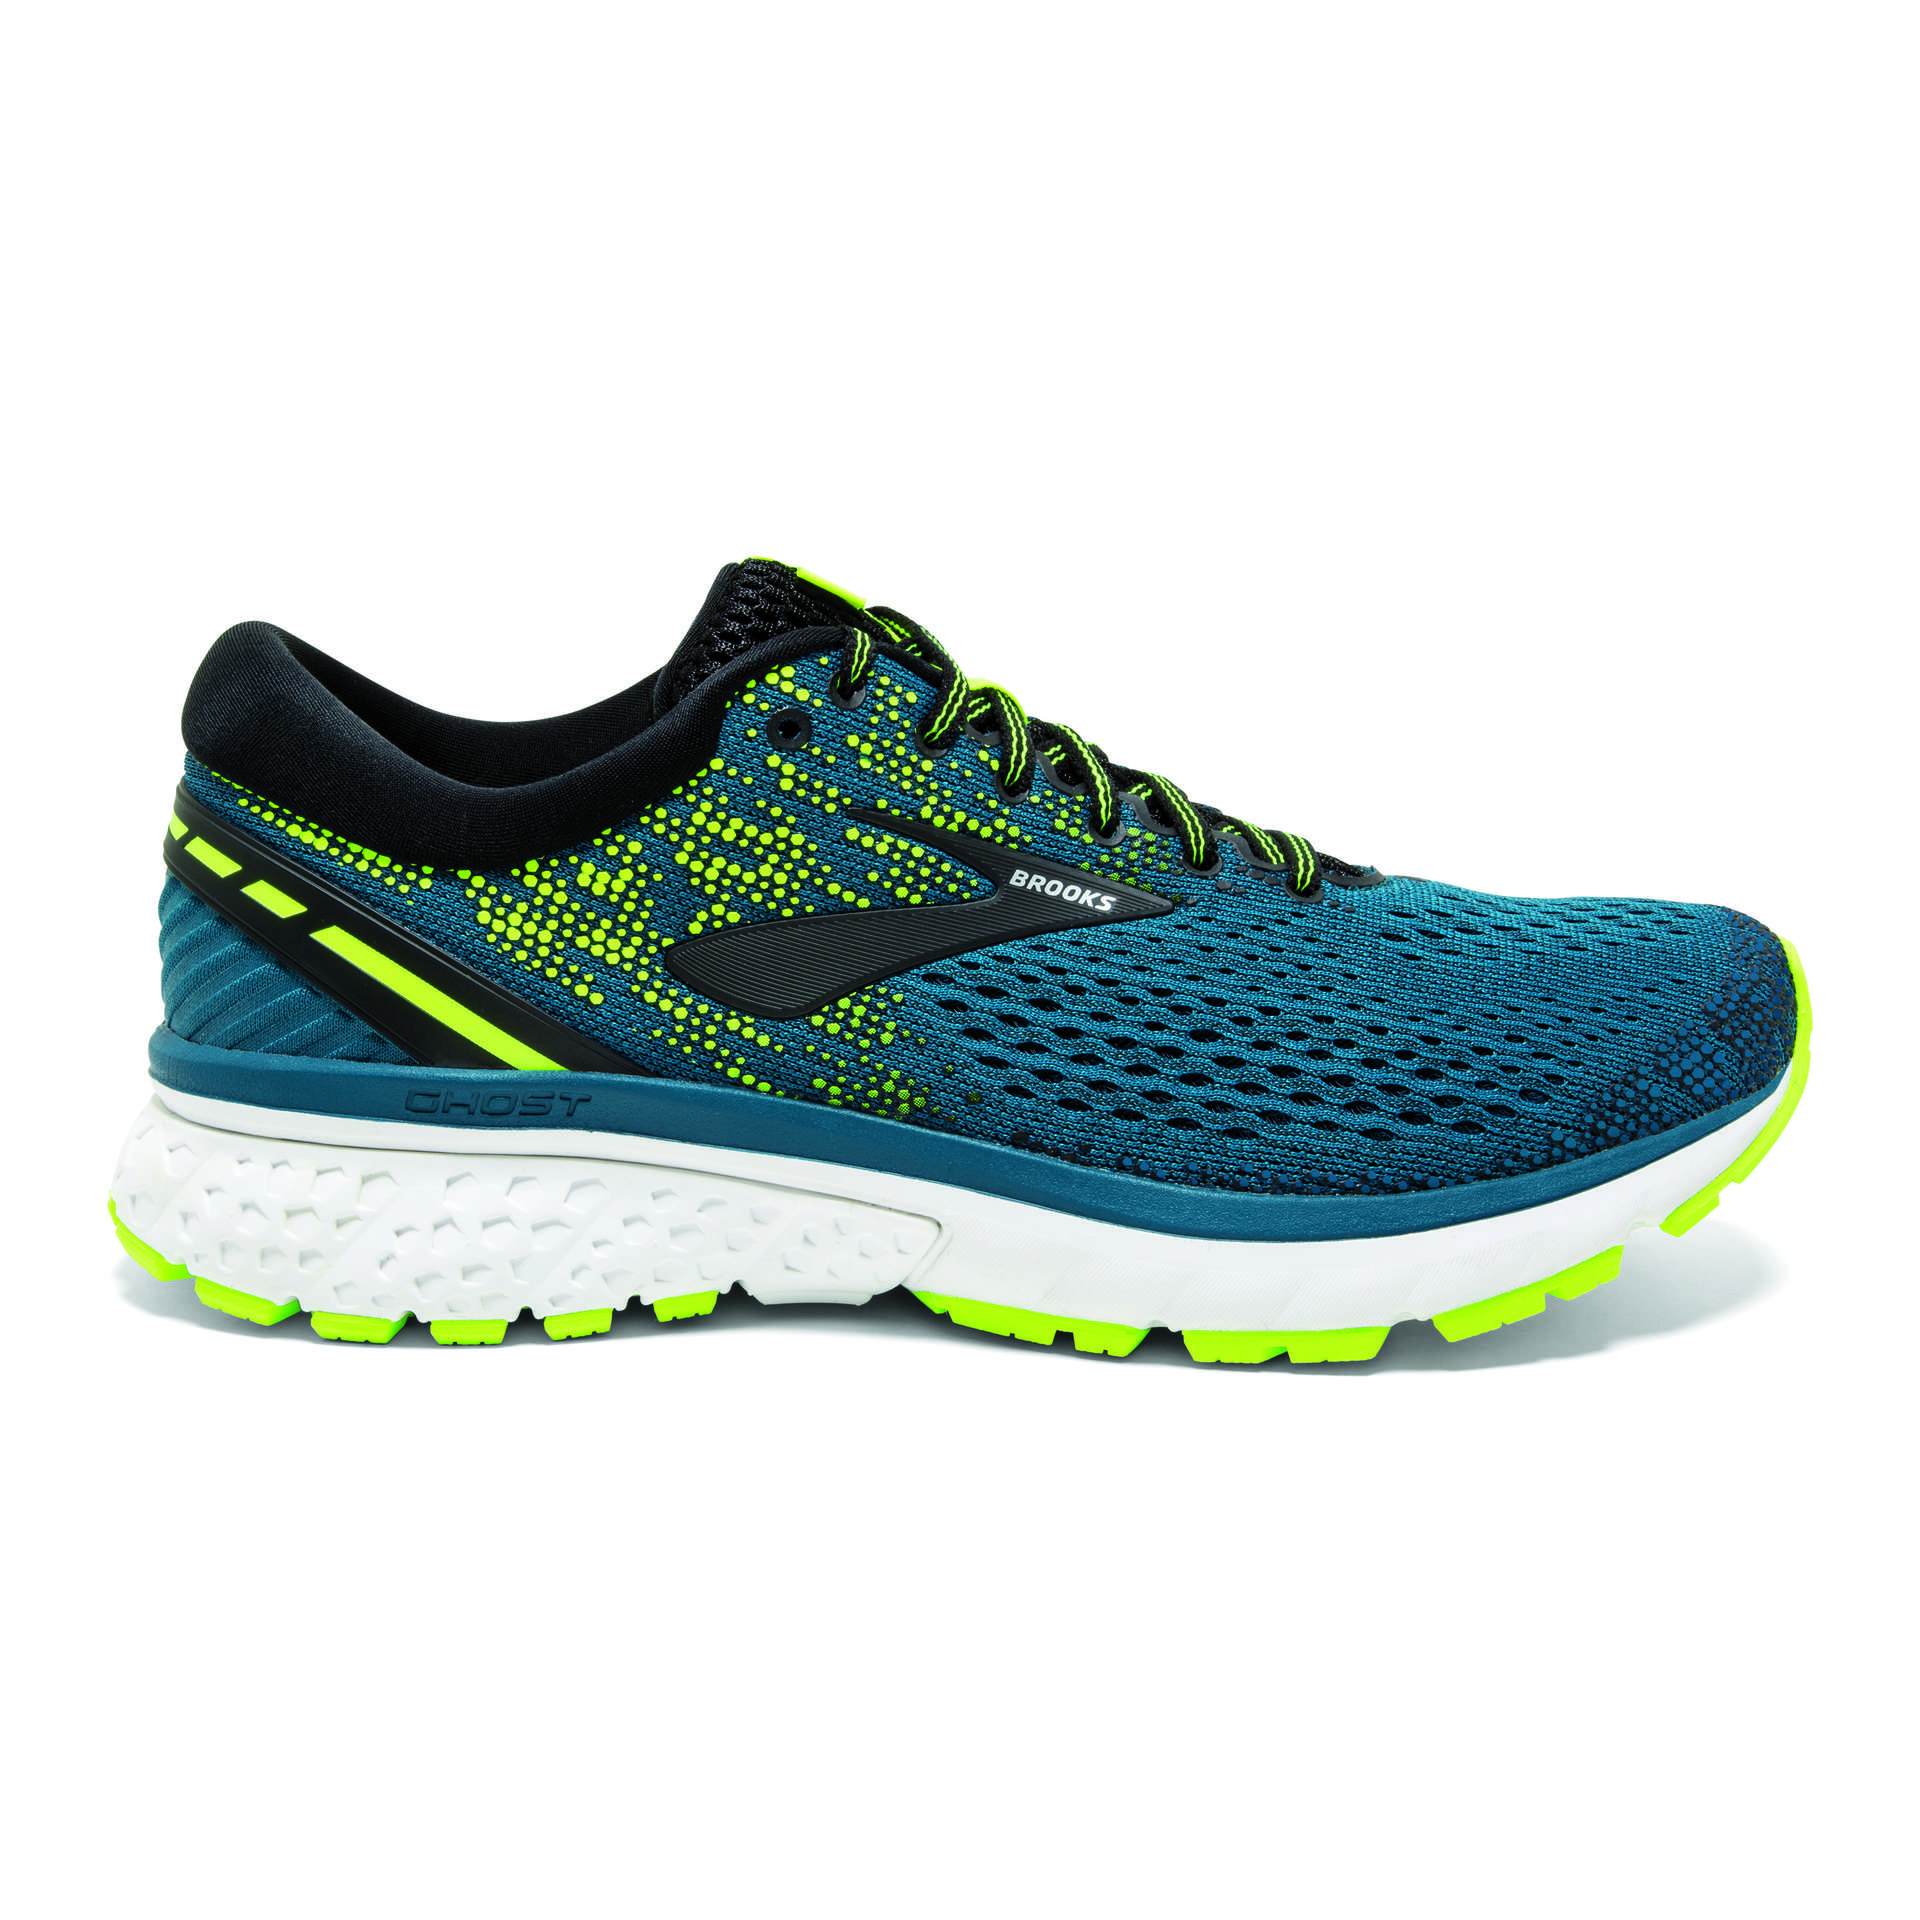 7826475c4a5db Mens Brooks Ghost 11 - John Buckley Sports